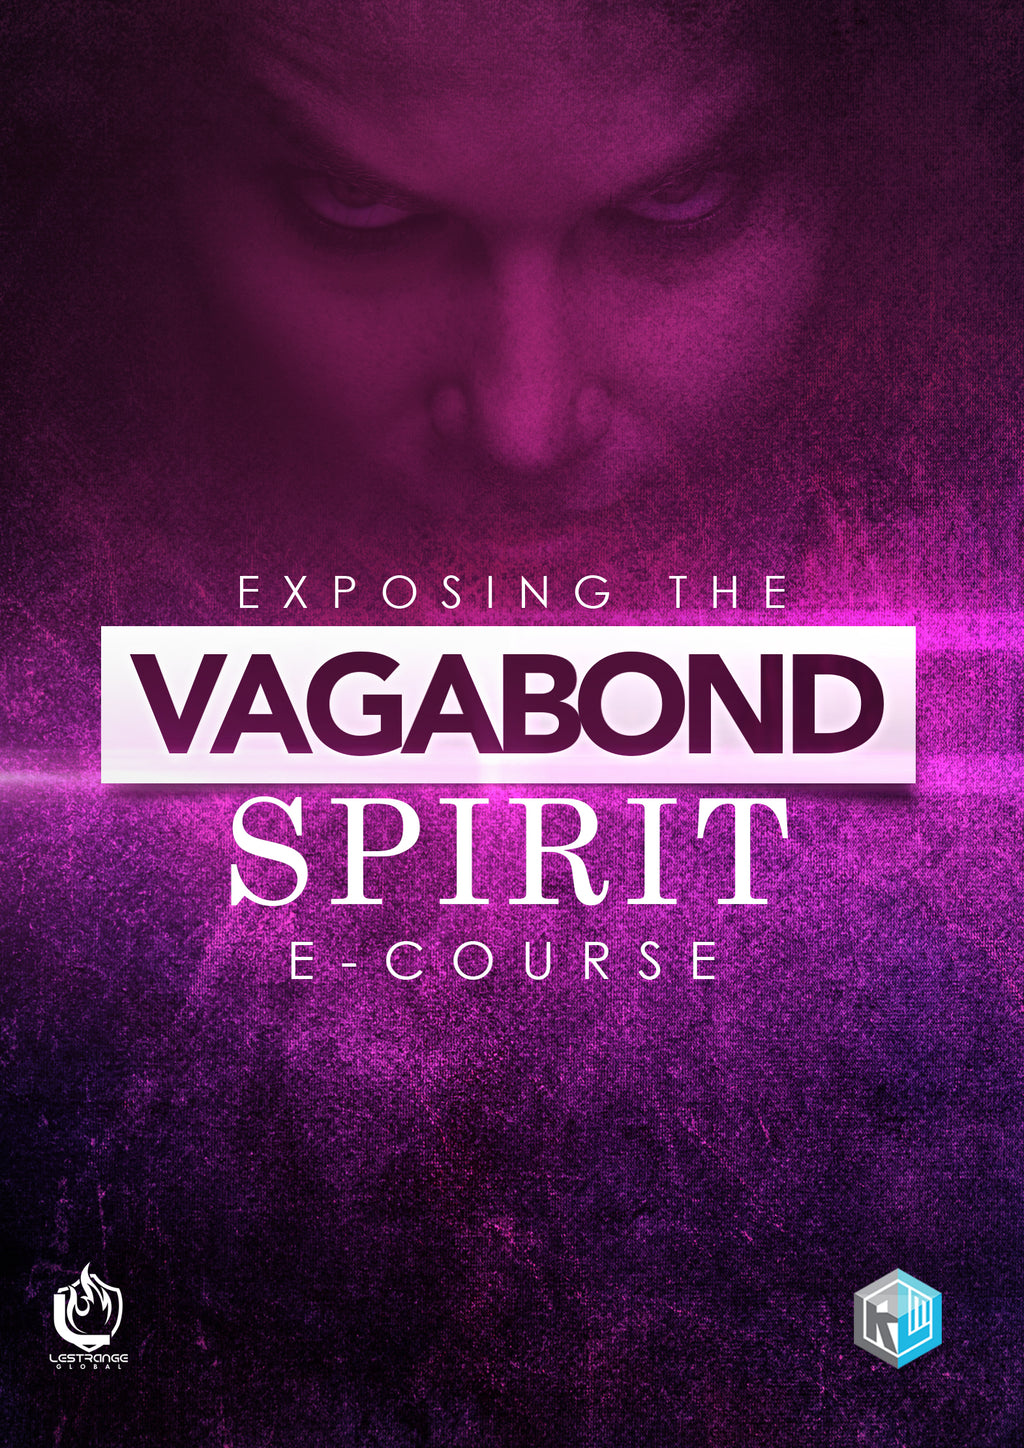 Exposing the Vagabond Spirit E-Course